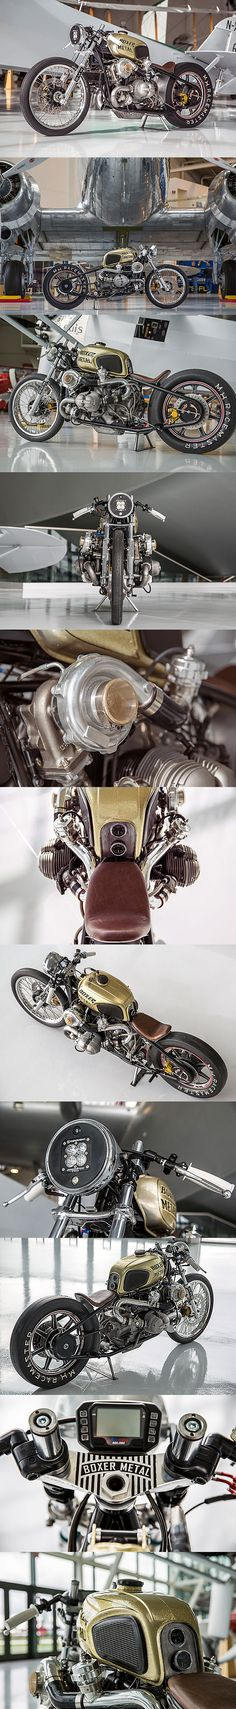 Twin Turbo BMW R100 - Boxer Metal